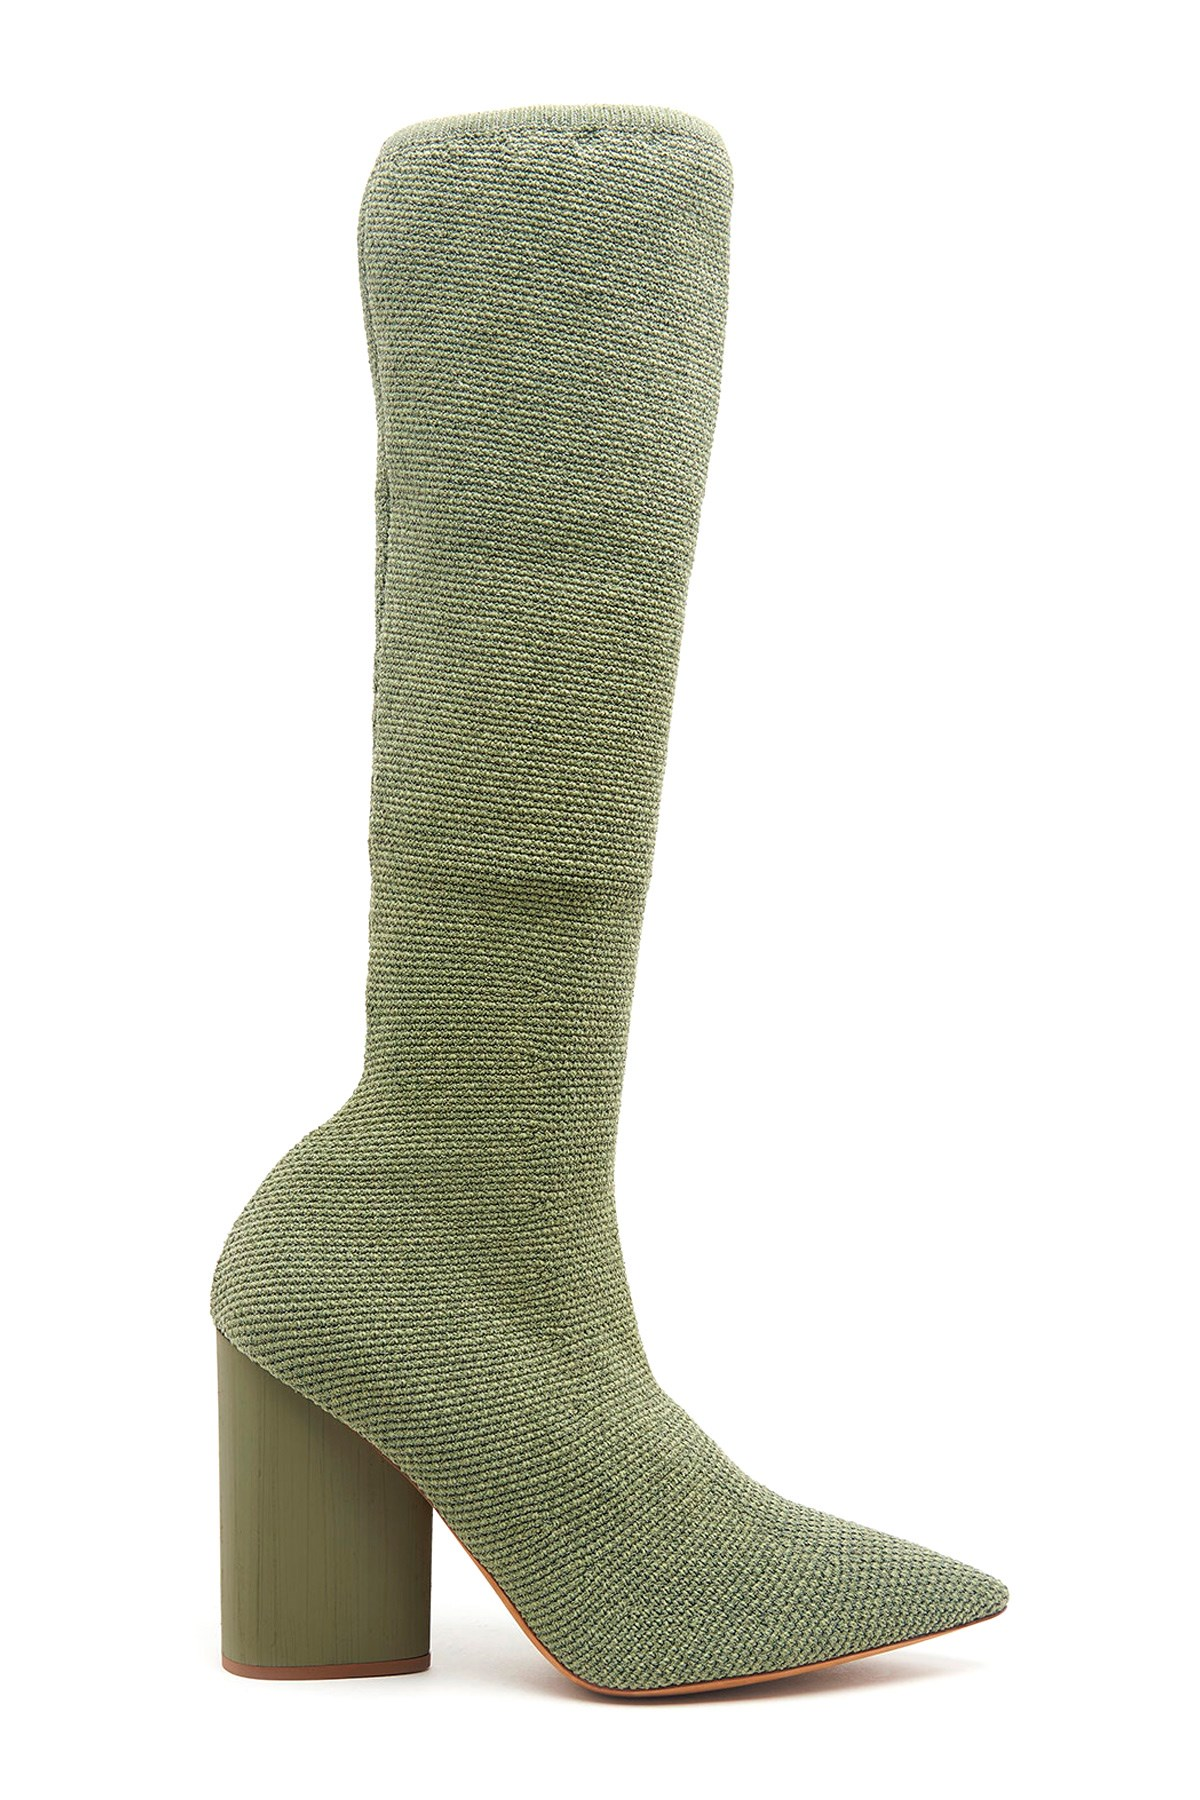 6e6abcb953 yeezy stretch boots available on julian-fashion.com - 55023